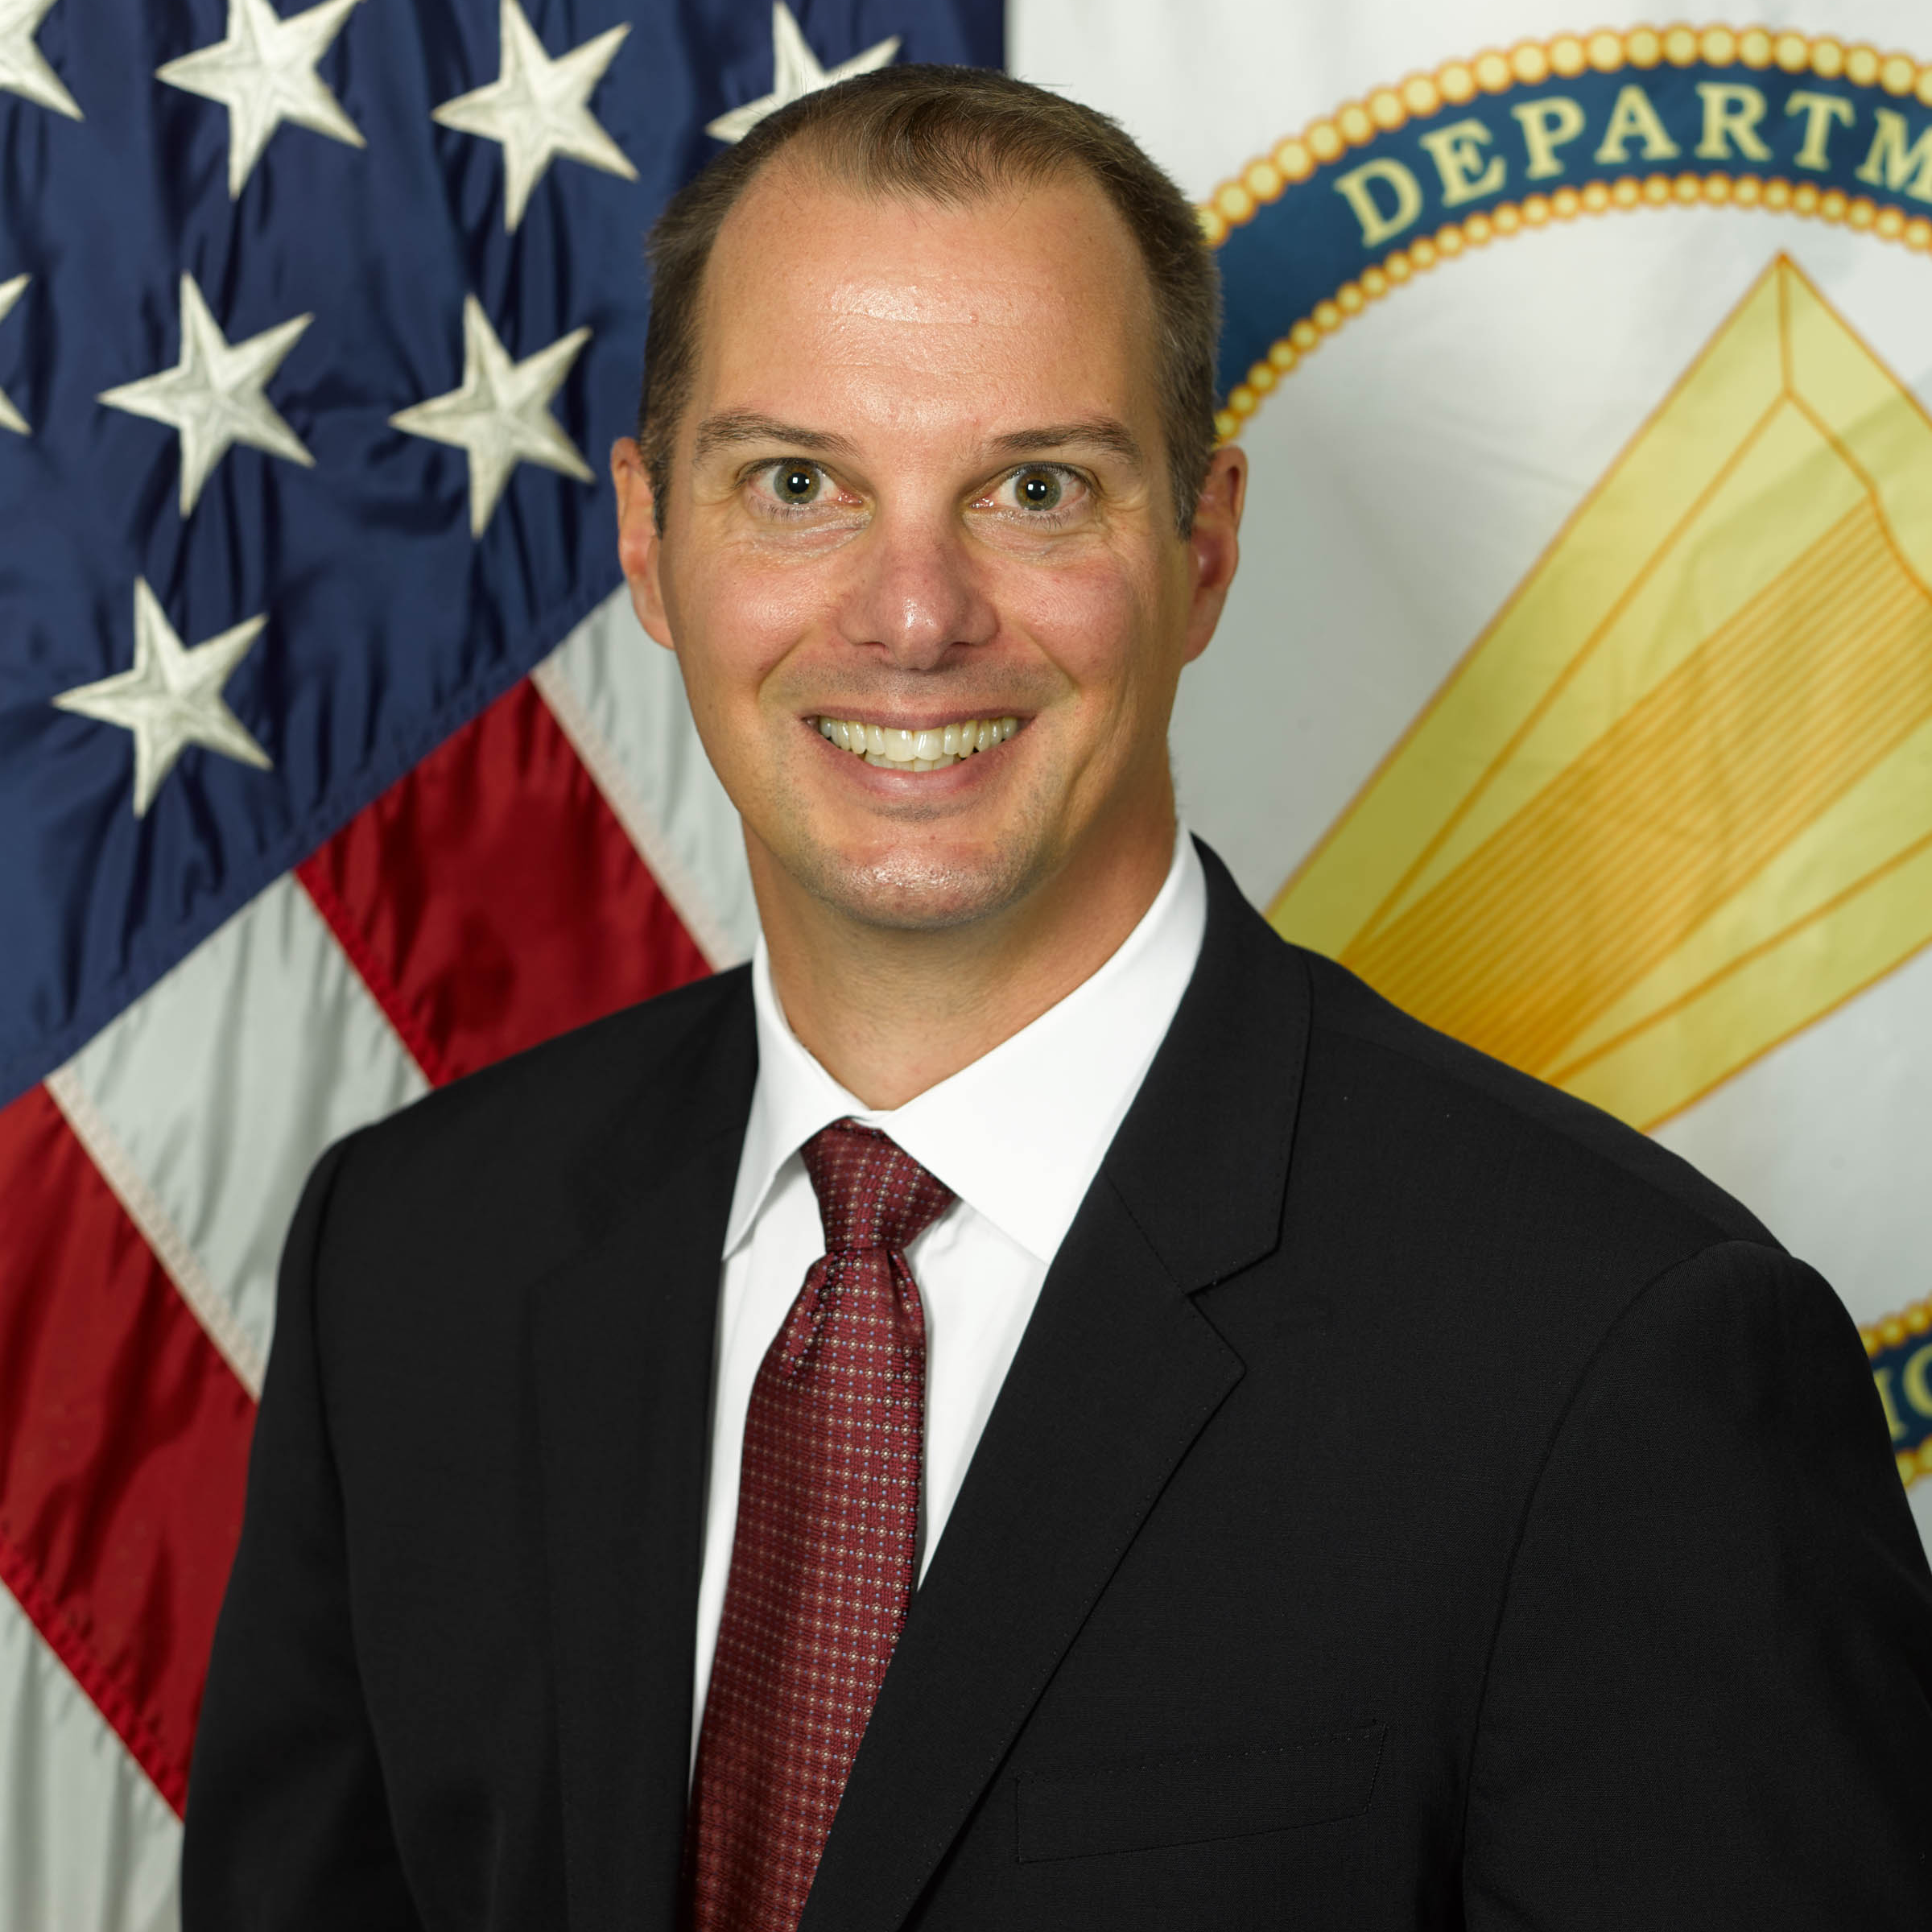 Michael Monteleone SES, Director of Space and Terrestrial Communications Directorate at U.S. Army CERDEC